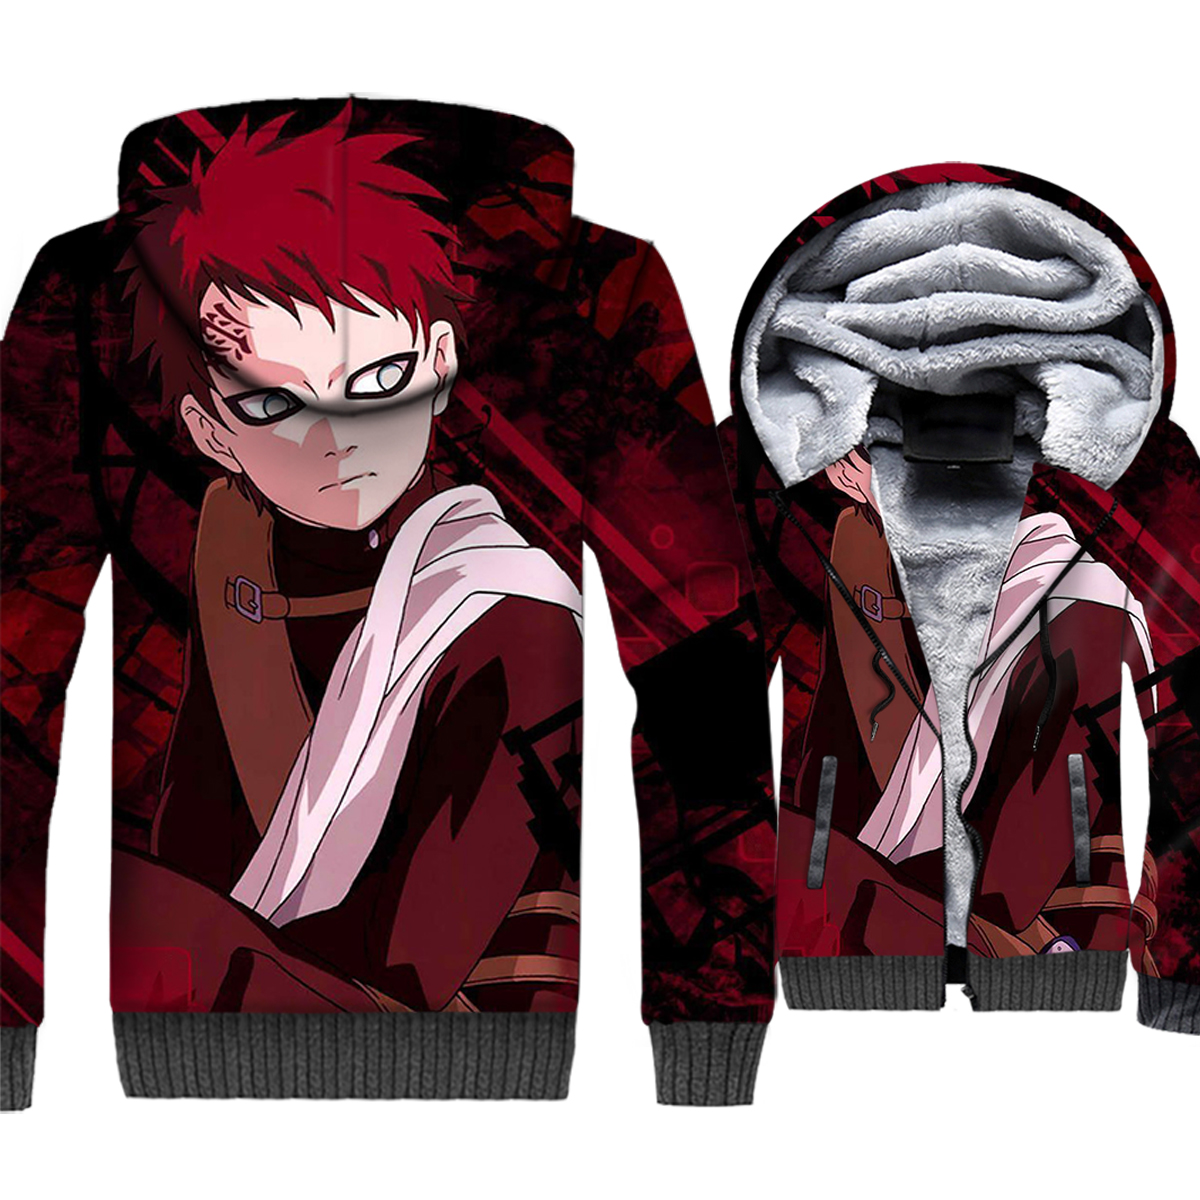 Hot Sale Man Sweatshirts 2019 Winter Clothing 3D Space Galaxy Uzumaki Naruto Wife Anime Hoodie Thick Unisex Coat Casual Jackets in Hoodies amp Sweatshirts from Men 39 s Clothing